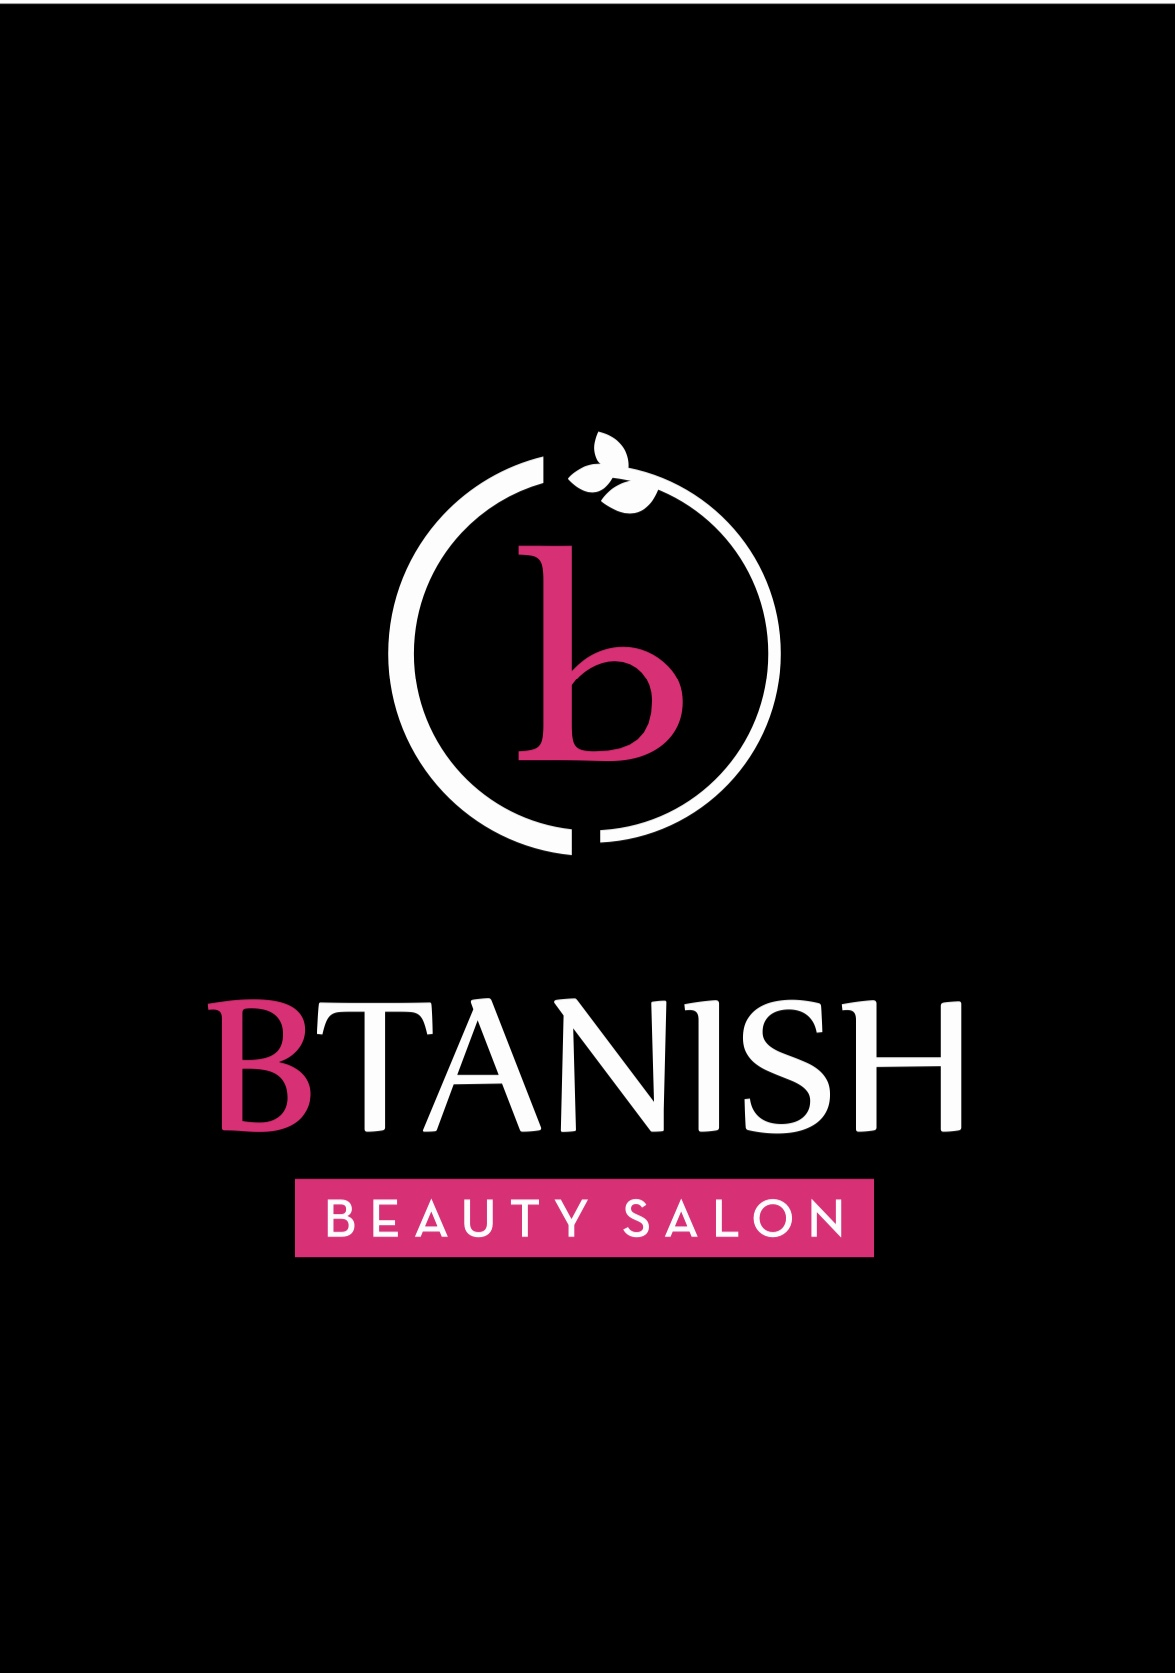 B Tanish Unisex Salon